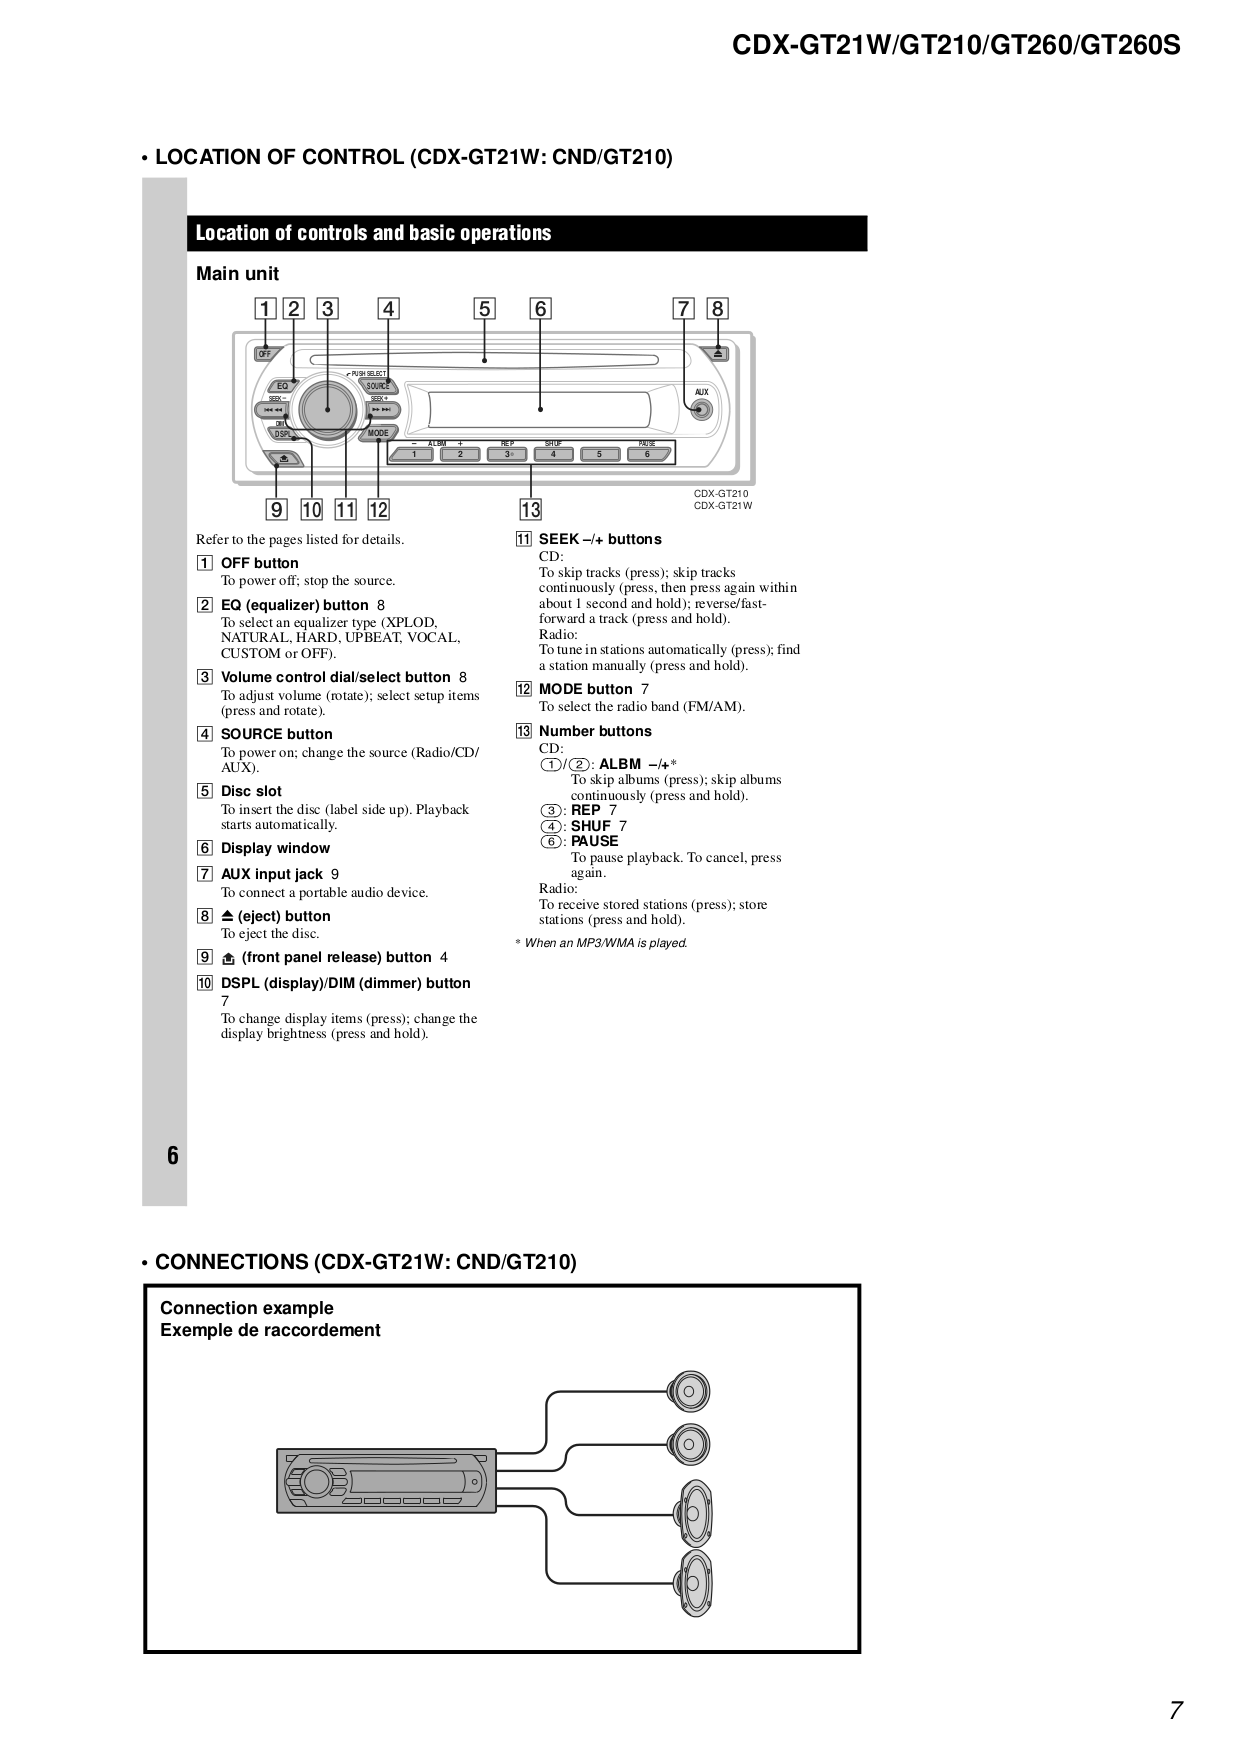 Sony Cdx Gt210 Wiring Diagram Page 2 And Schematics Deck Pdf Manual For Car Receiver Rh Umlib Com Xplod